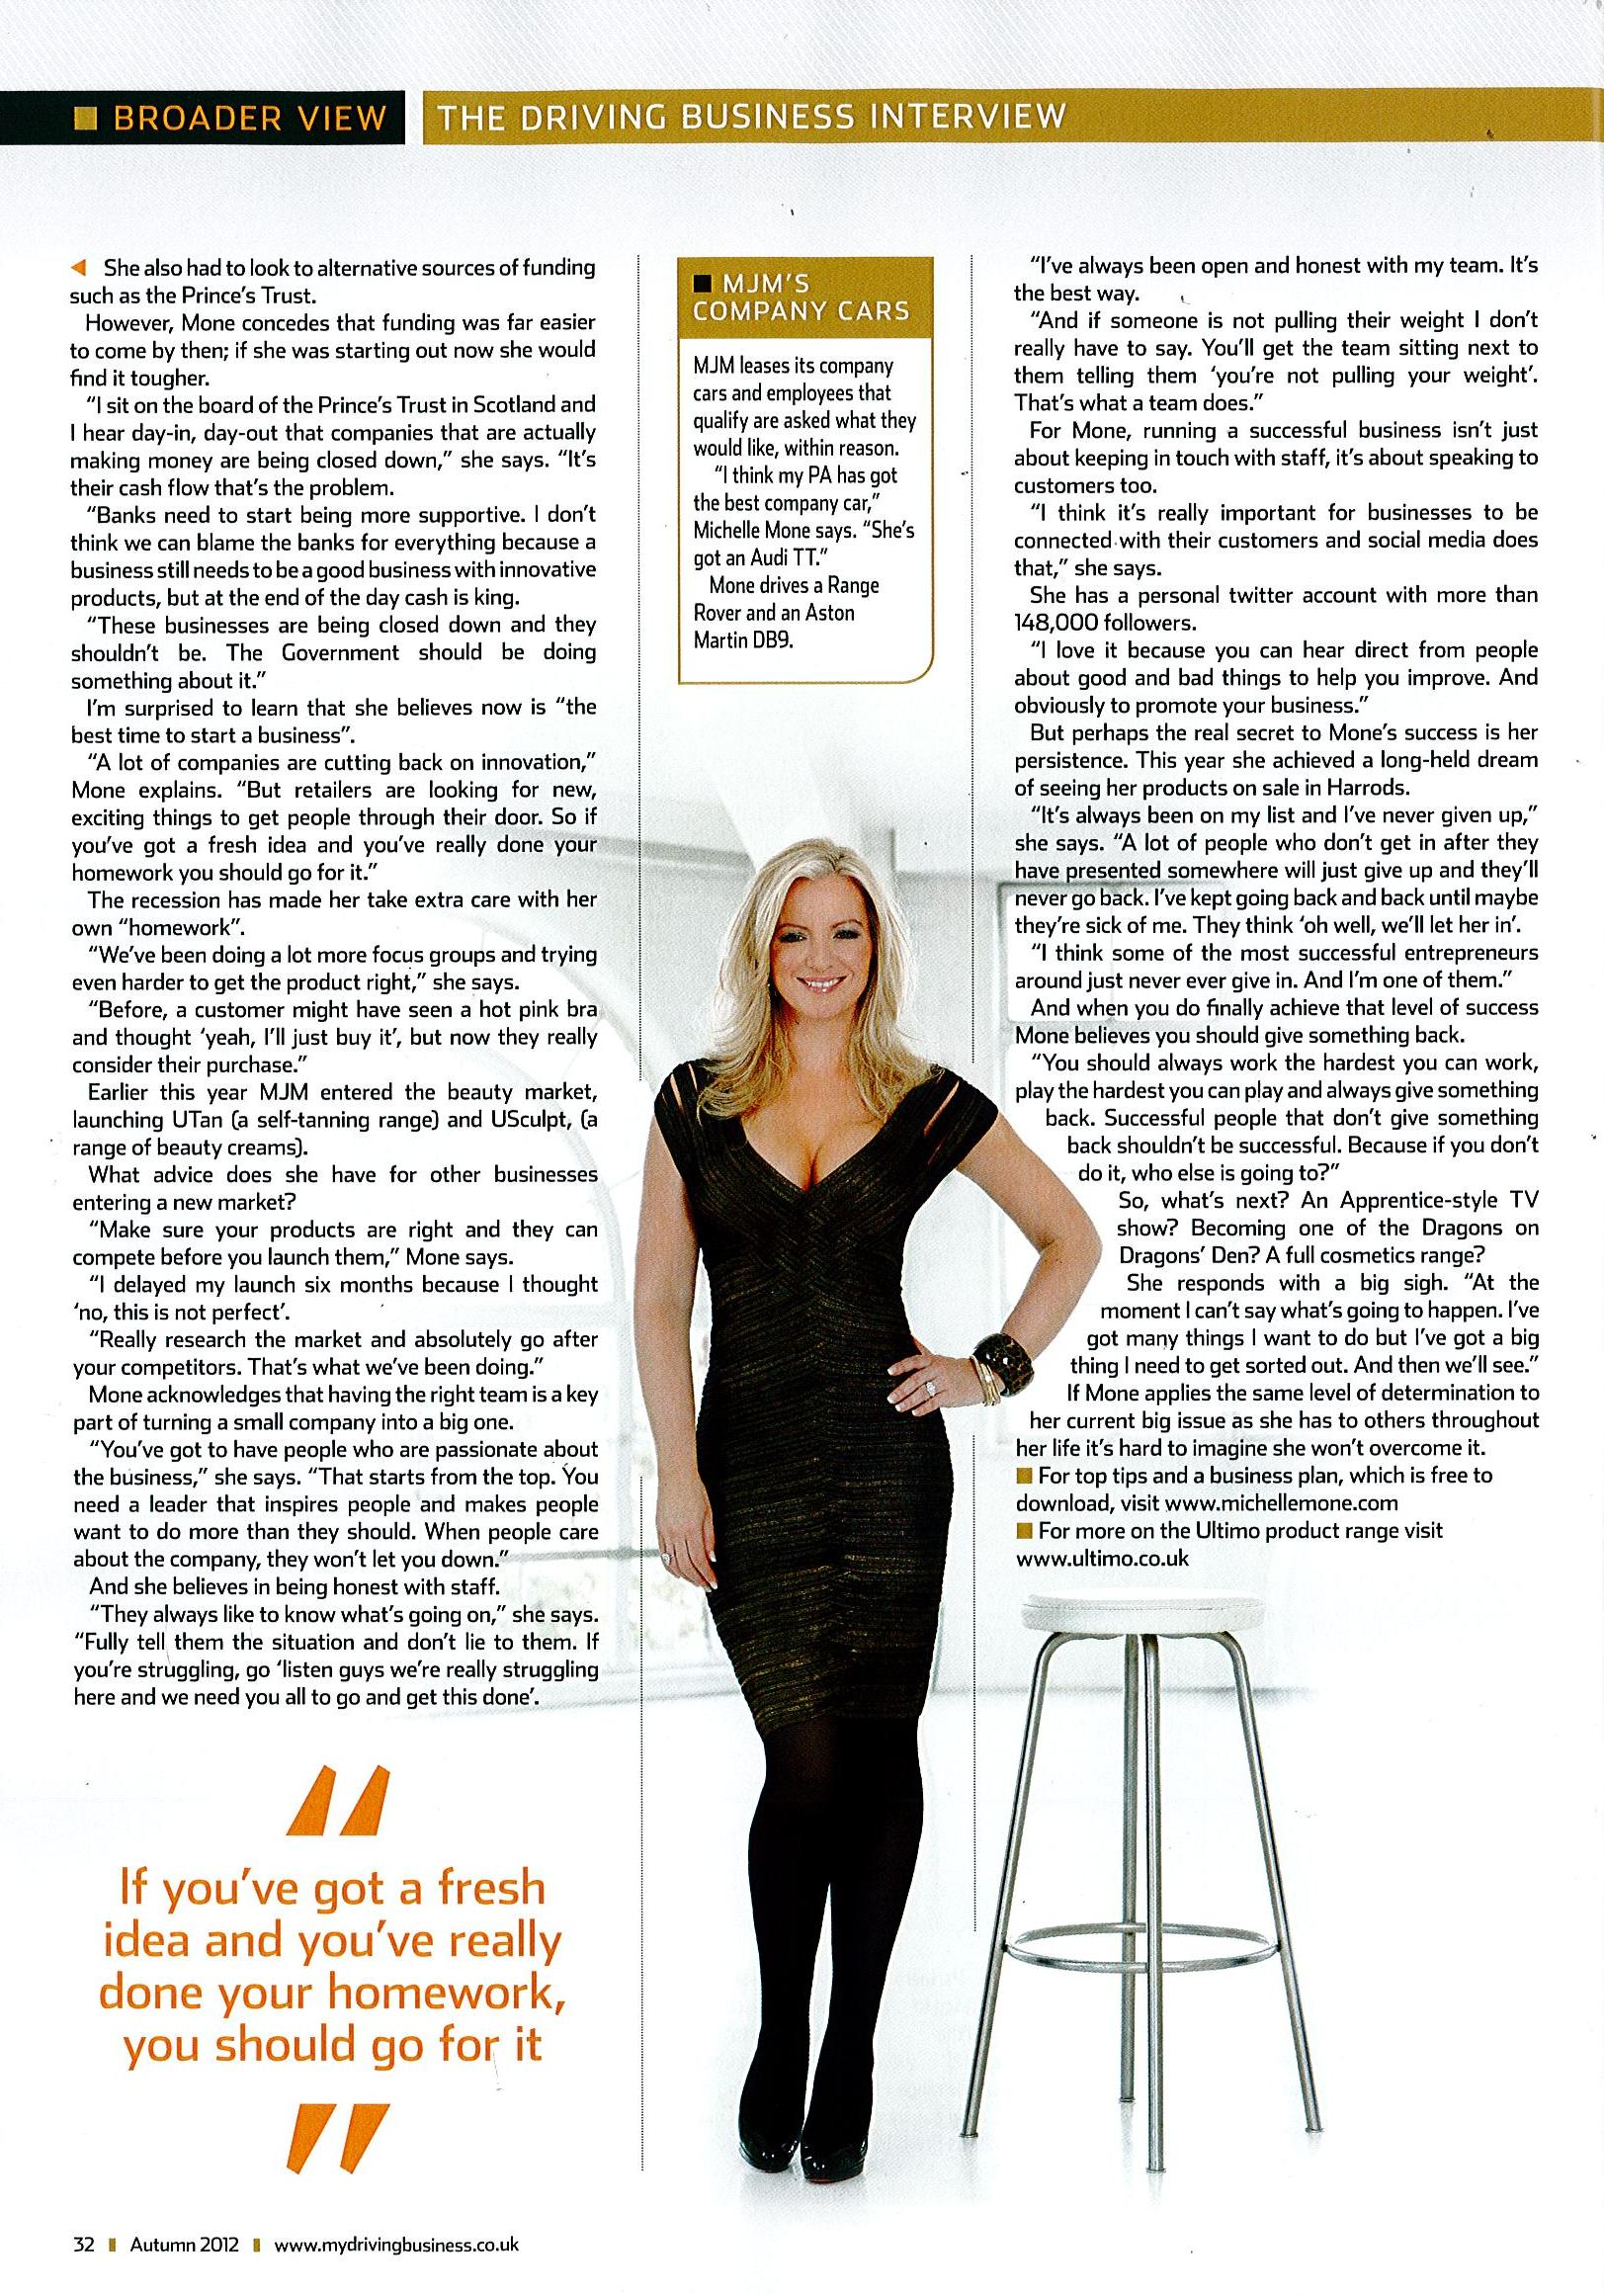 Driving-Business-Magazine-Michelle-Mone-Monday29thOctober2012-Page3